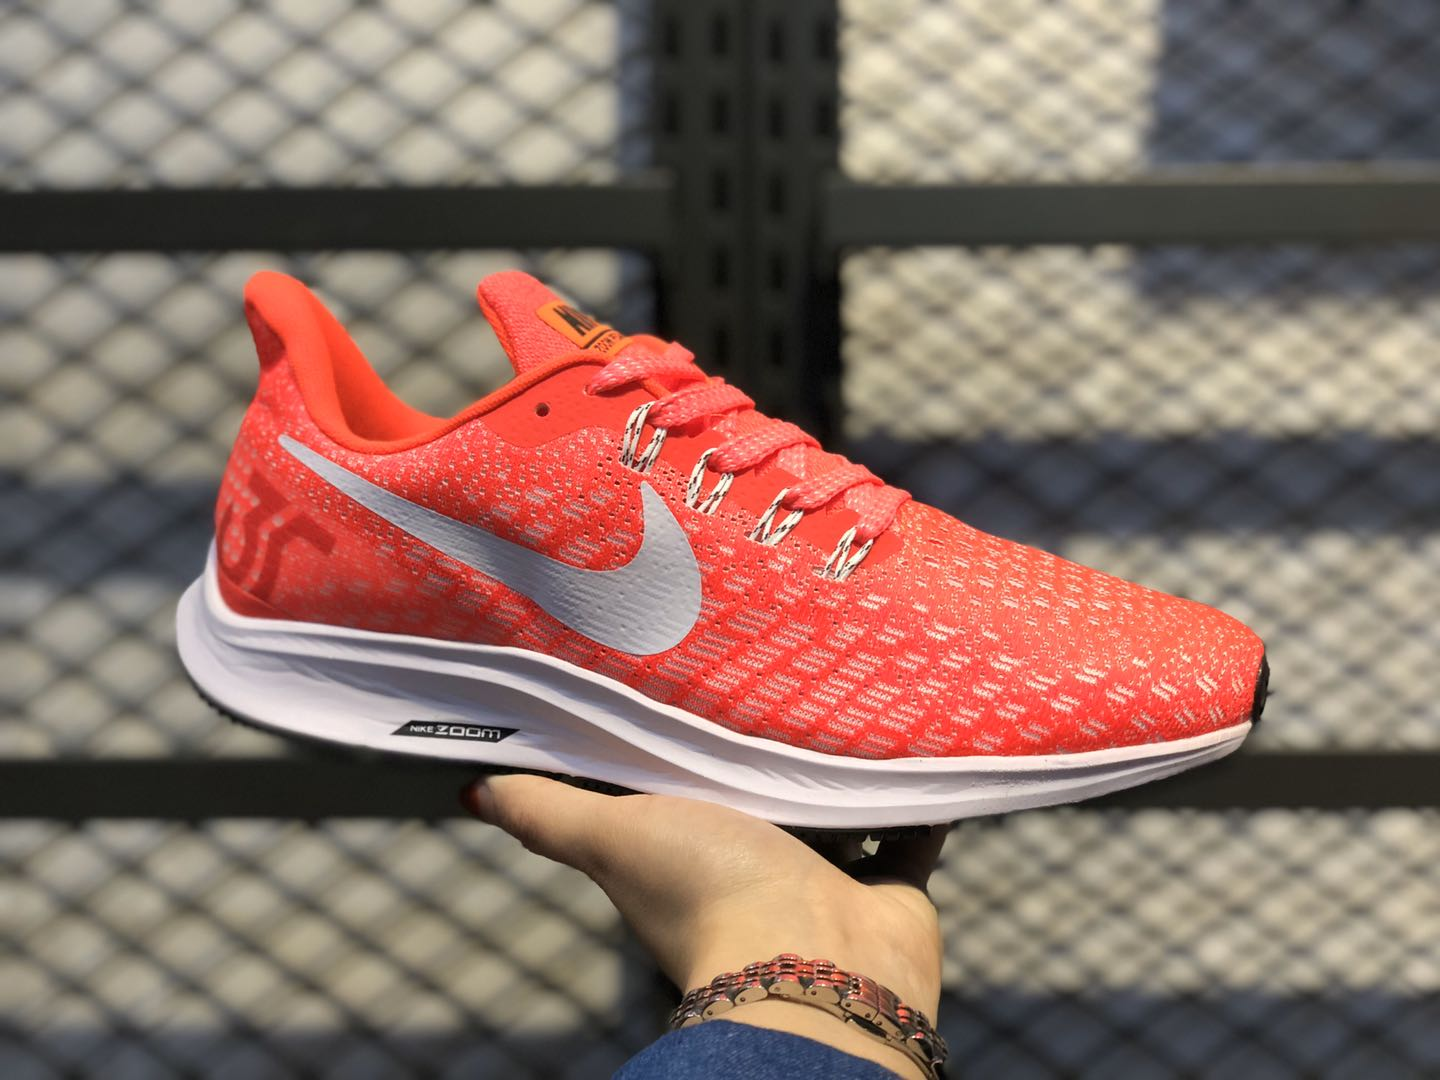 Nike WMNS Air Zoom Pegasus 35 Red/Silver Running Shoes To Buy 942851-600